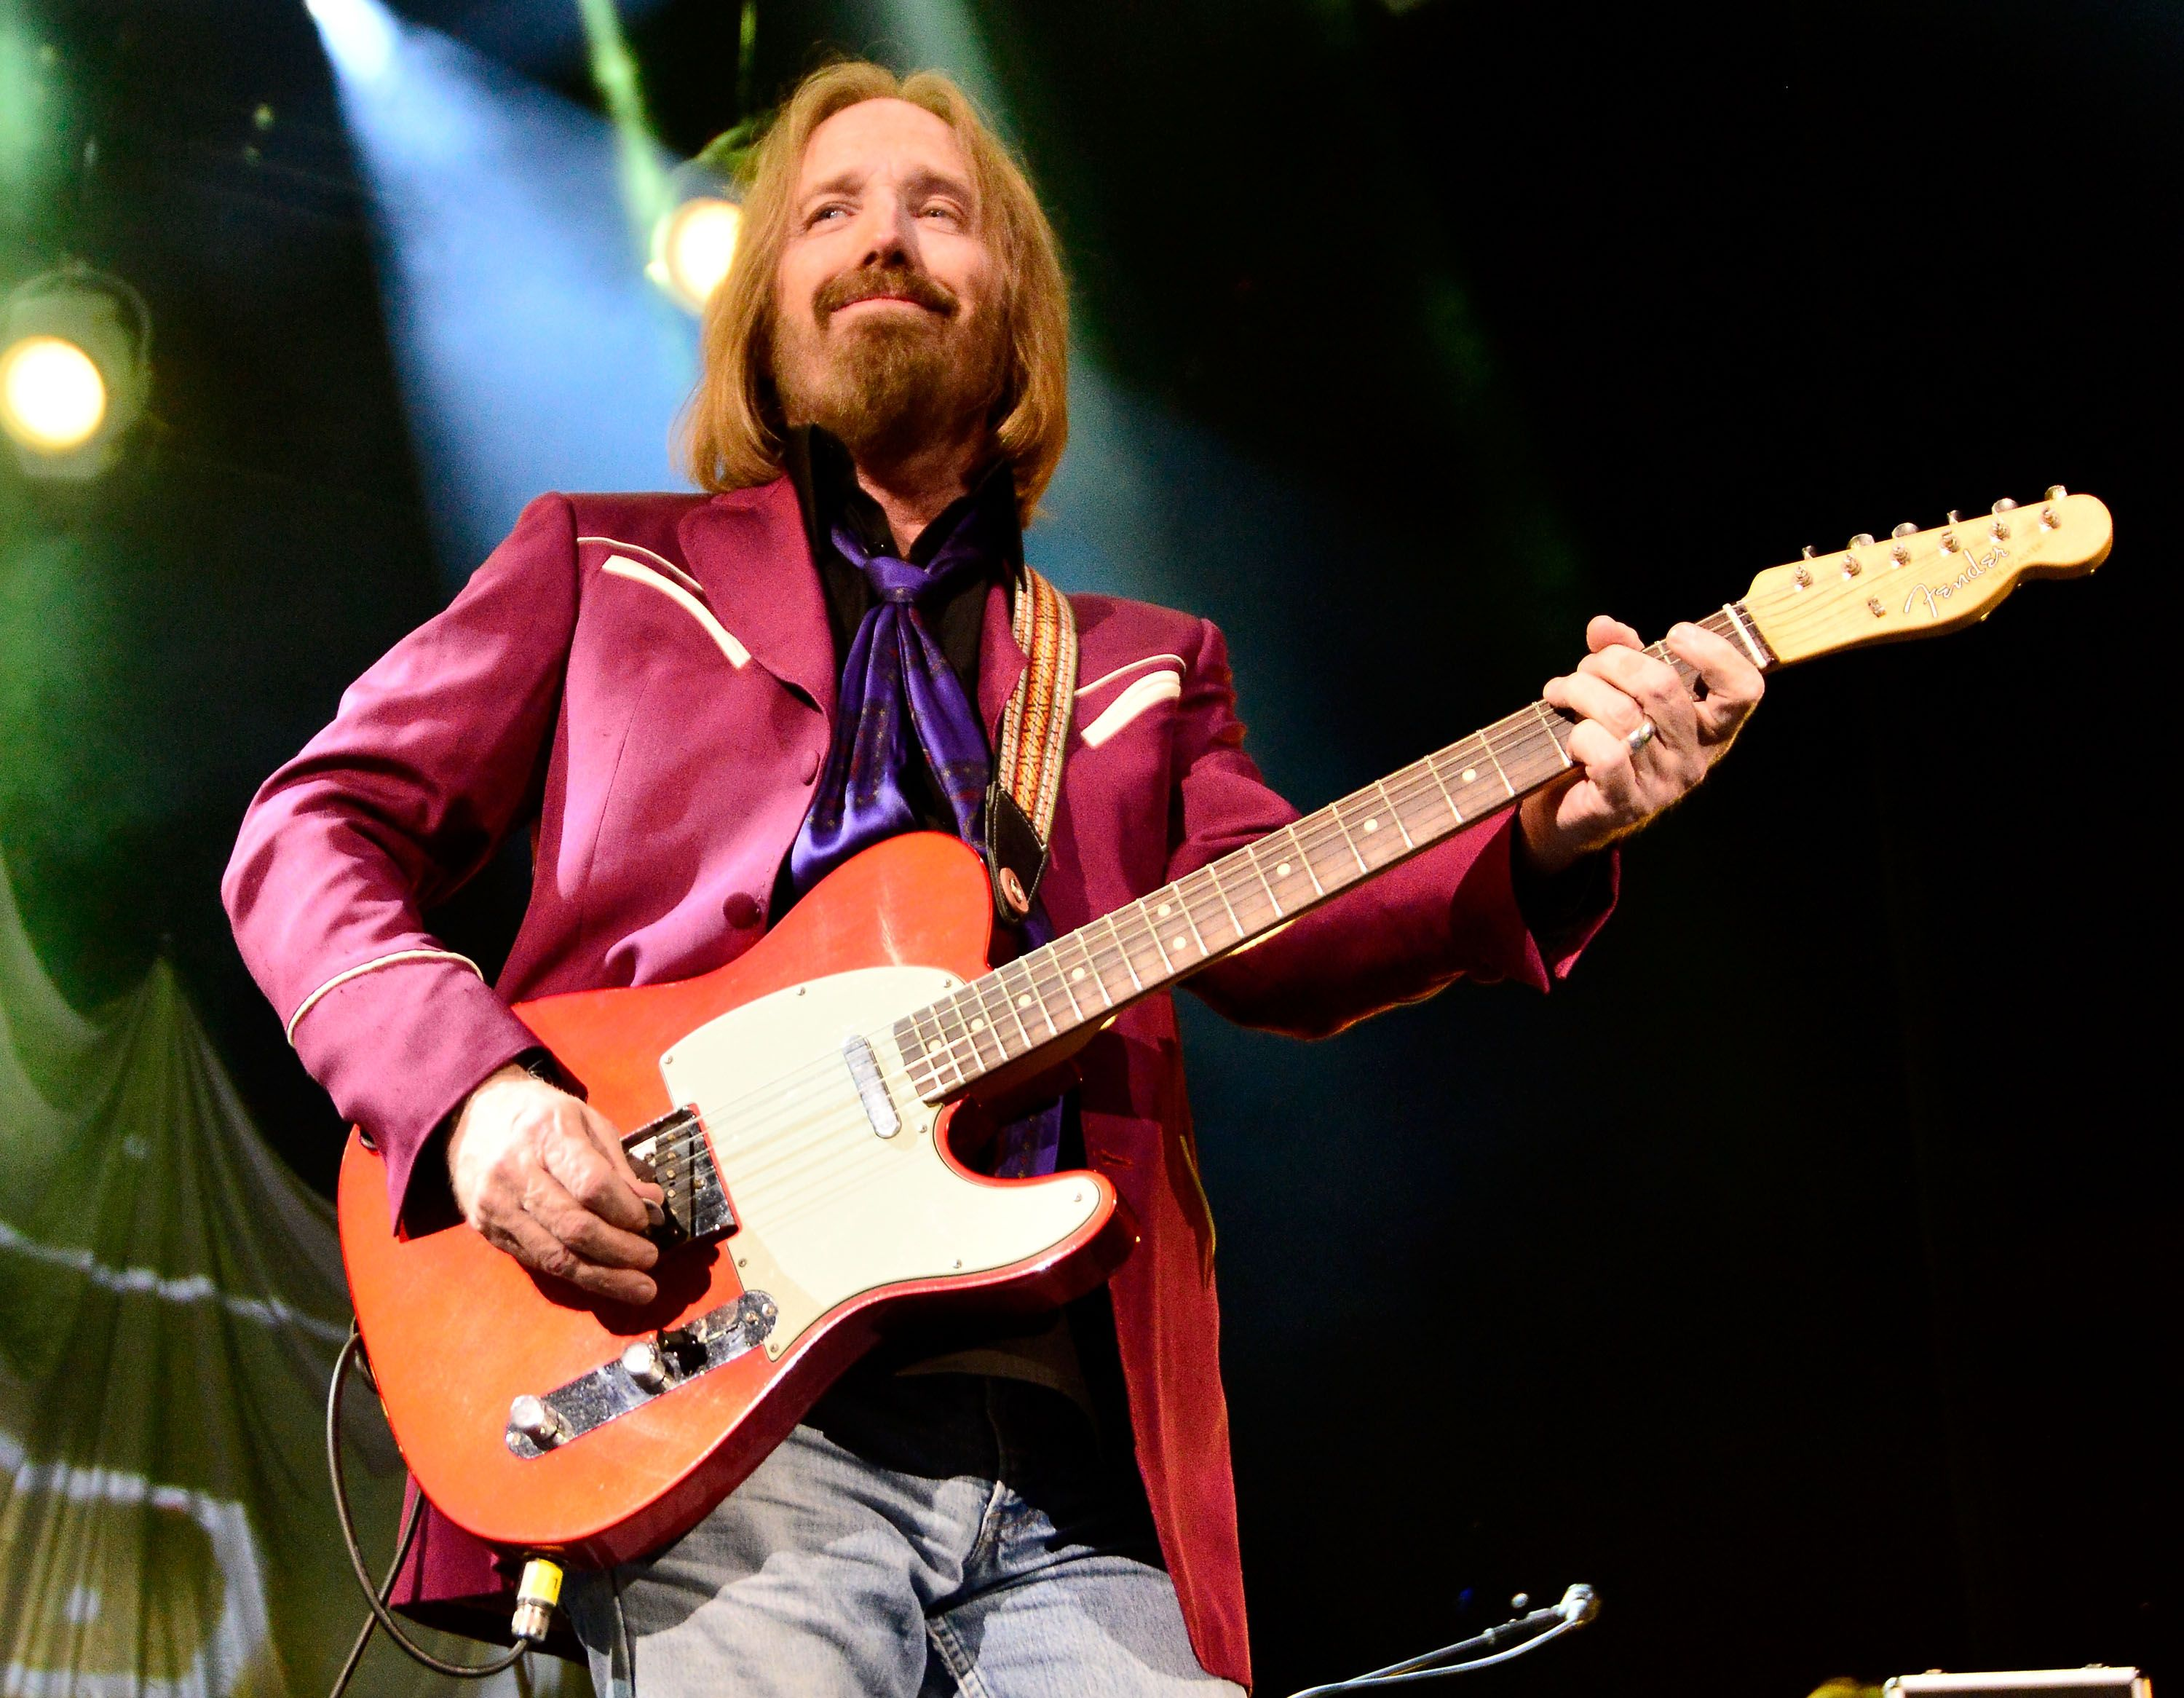 Tom Petty: What I've Learned